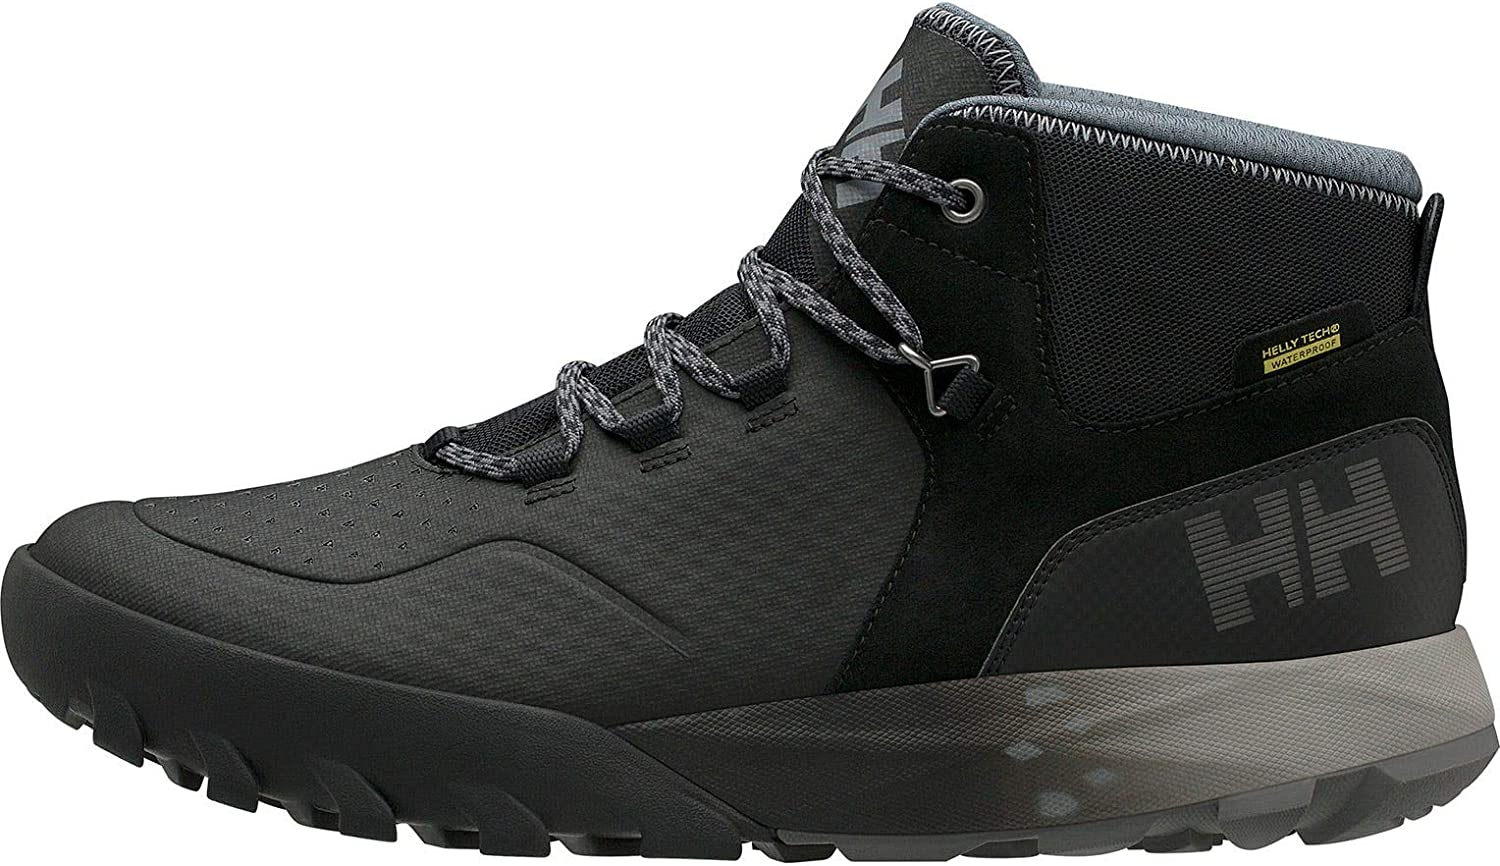 Image of Backpacking Boots Helly-Hansen Men's Loke Rambler HT Backpacking Boot